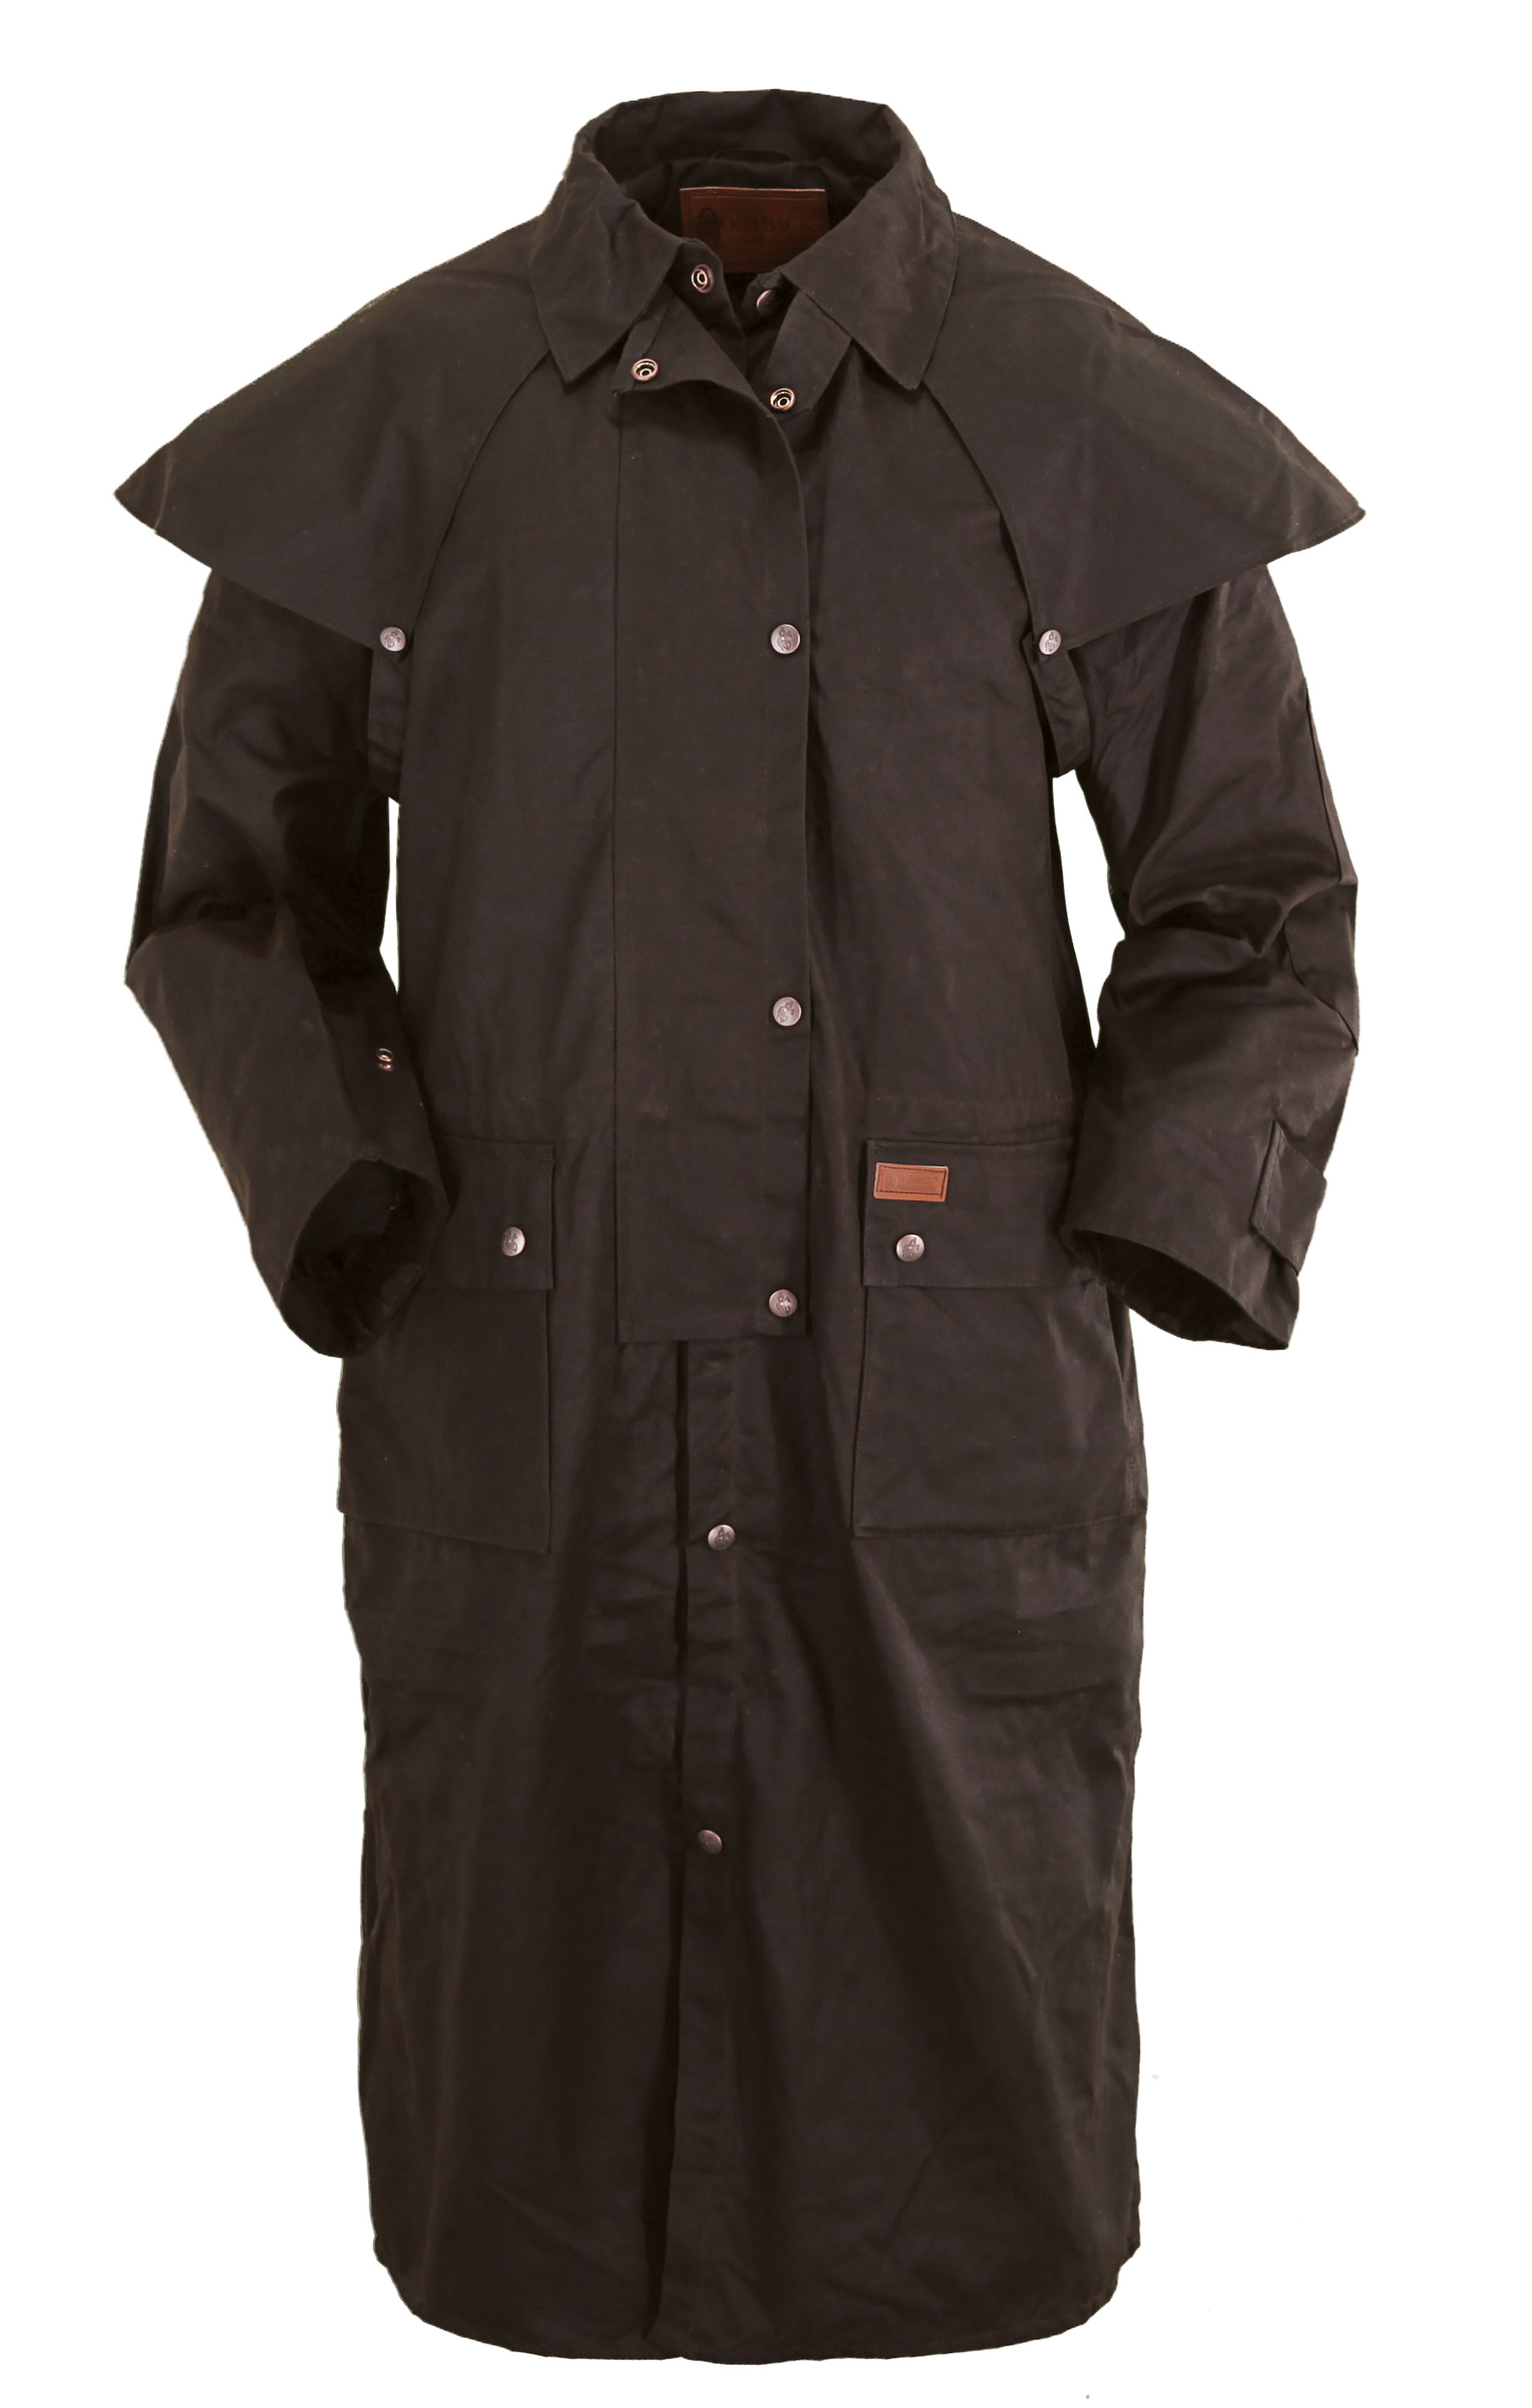 Outback trading co oilskin duster